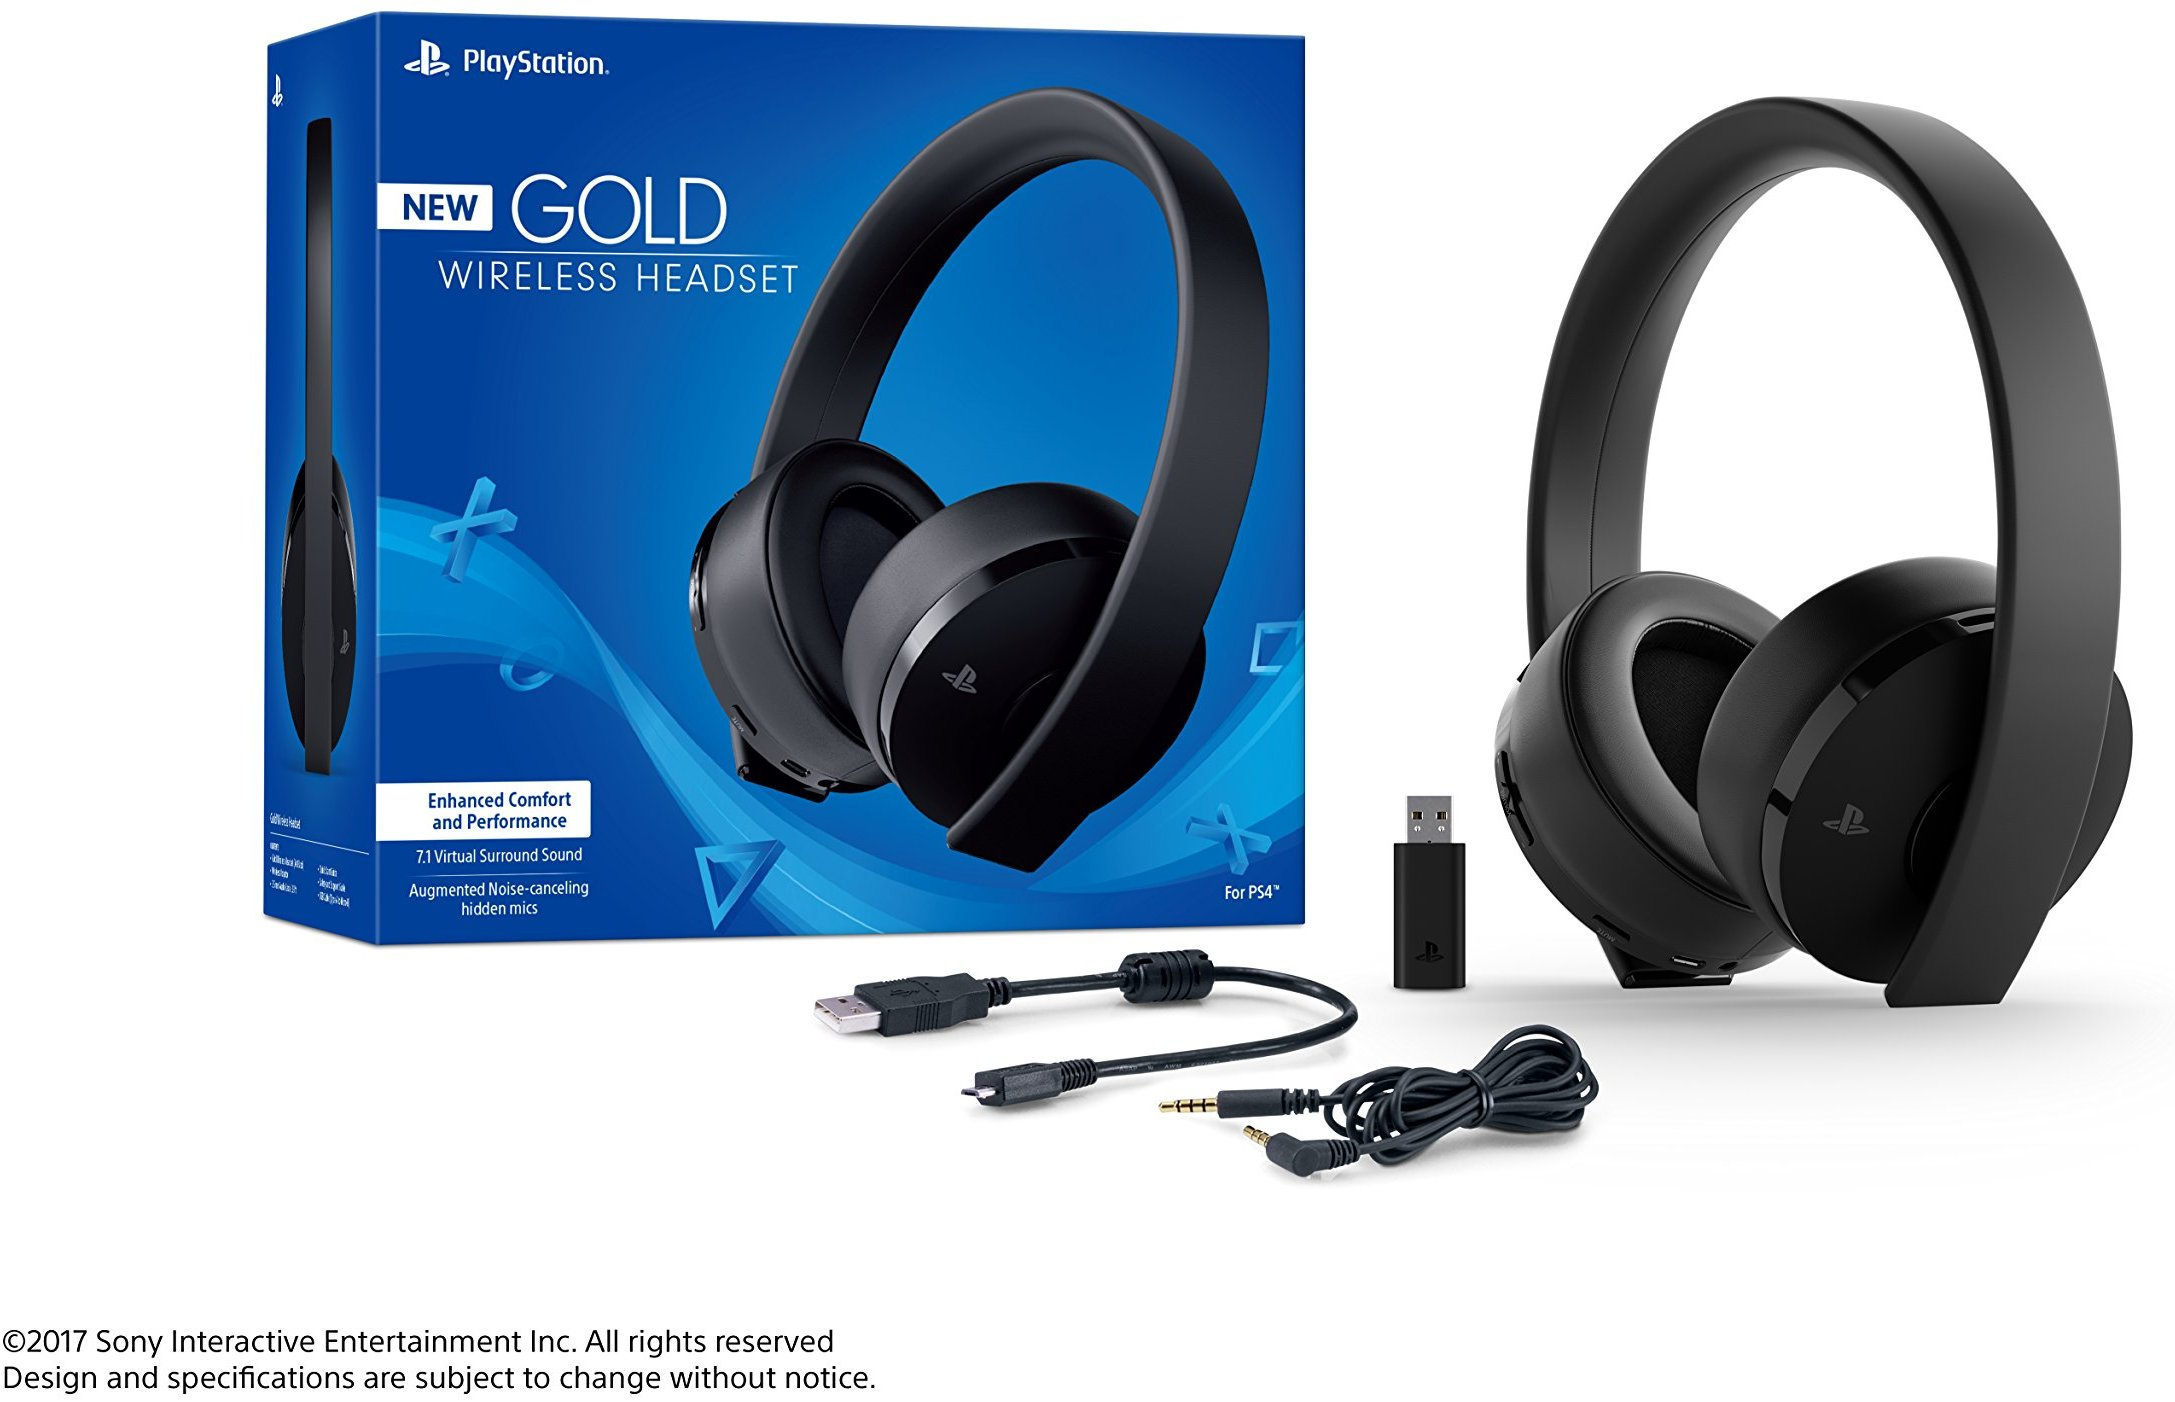 tai-nghe-khong-day-sony-cuhya0080-playstation-gold-wireless-headset-7-1